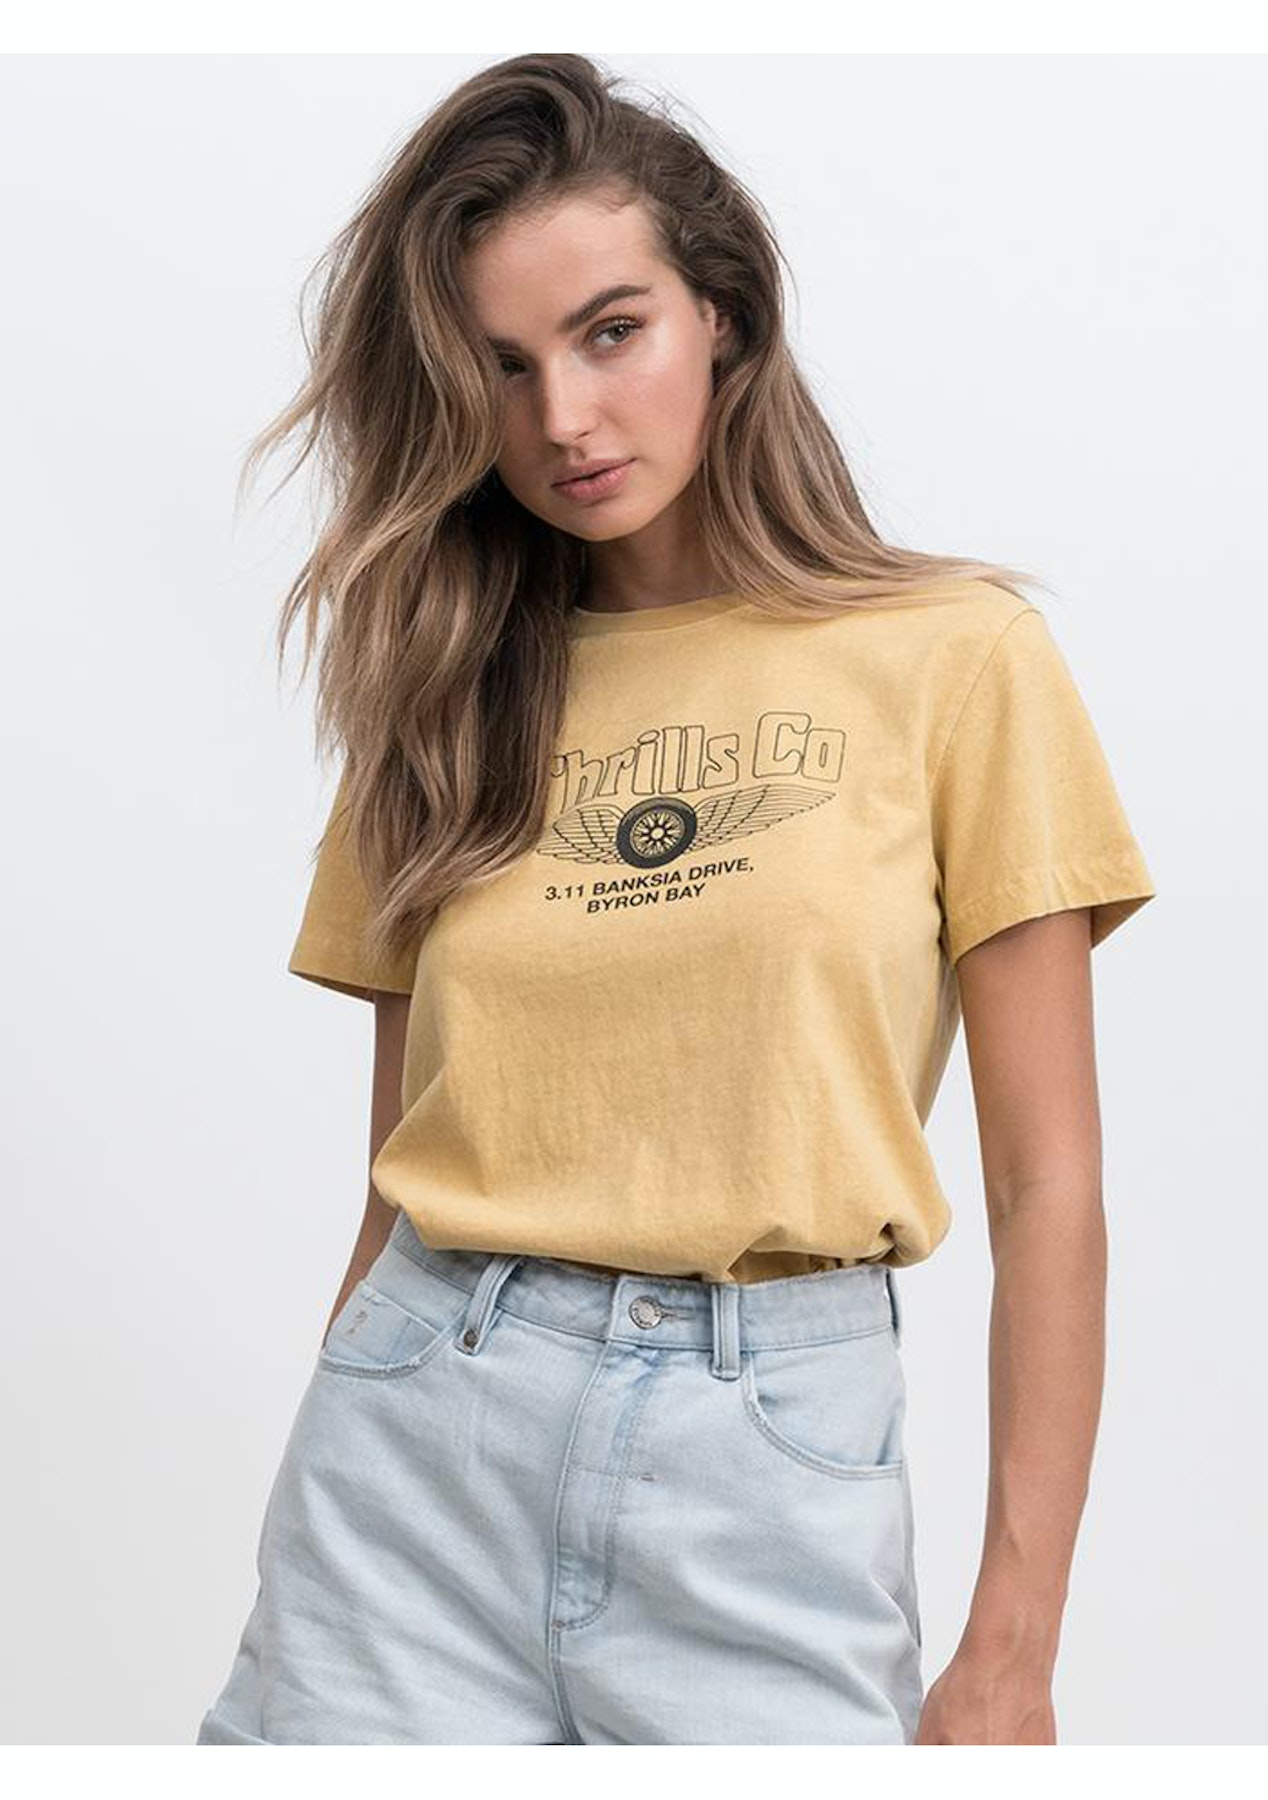 ee245a93f36c Thrills Co - Wheels N' Wings Band Tee - Heritage Yellow - DONT TRANSER Thrills  Co. - Onceit